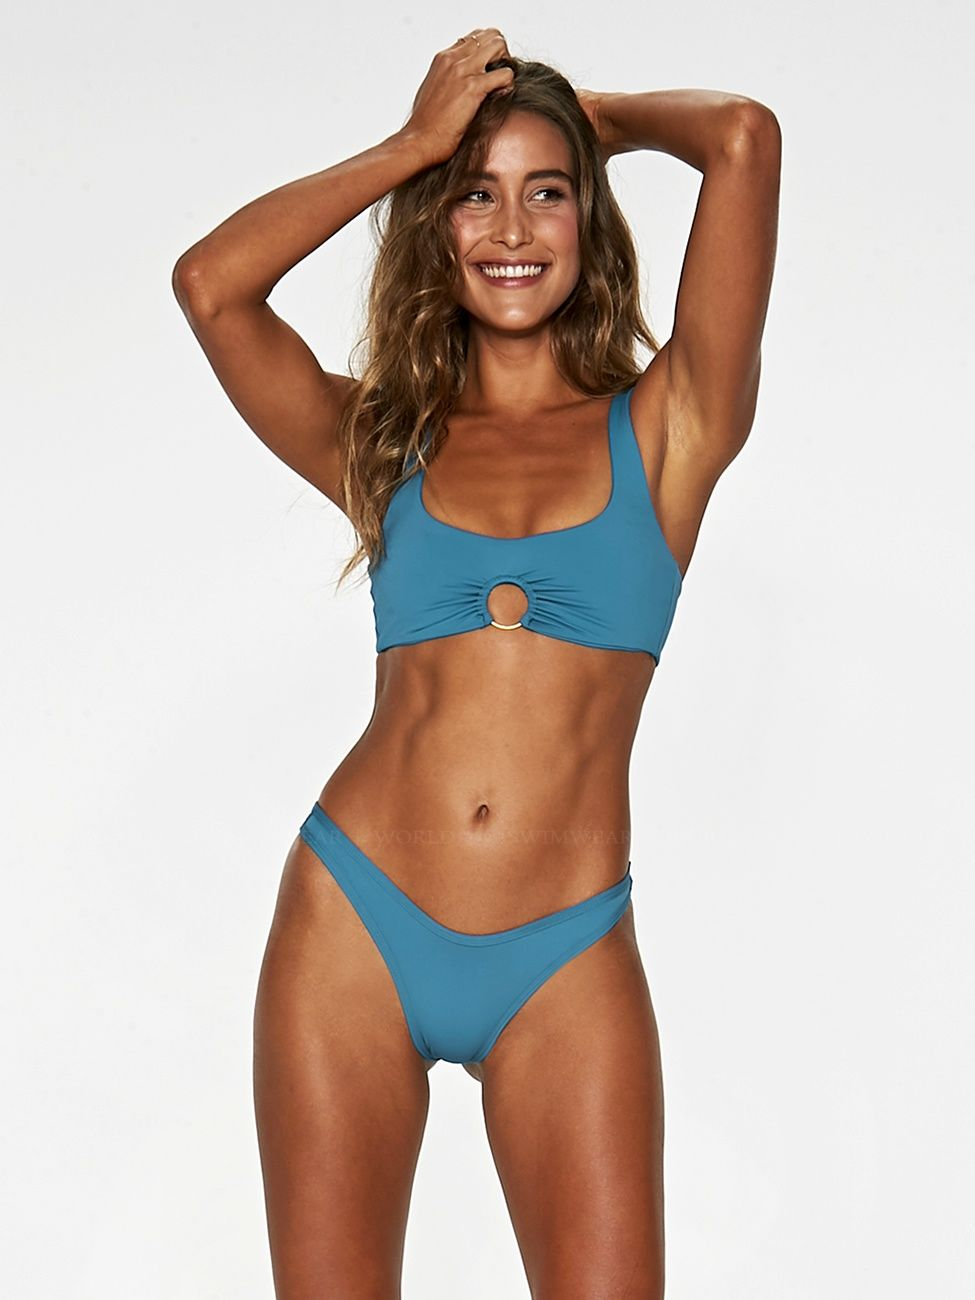 cbbbbe30608bc Buy L Space  Julia-Whiplash bikini (LSJUT18-MDR-LSWPB17-MDR) and more at  Swimwear World. Free shipping US and Canada. Ship worldwide.